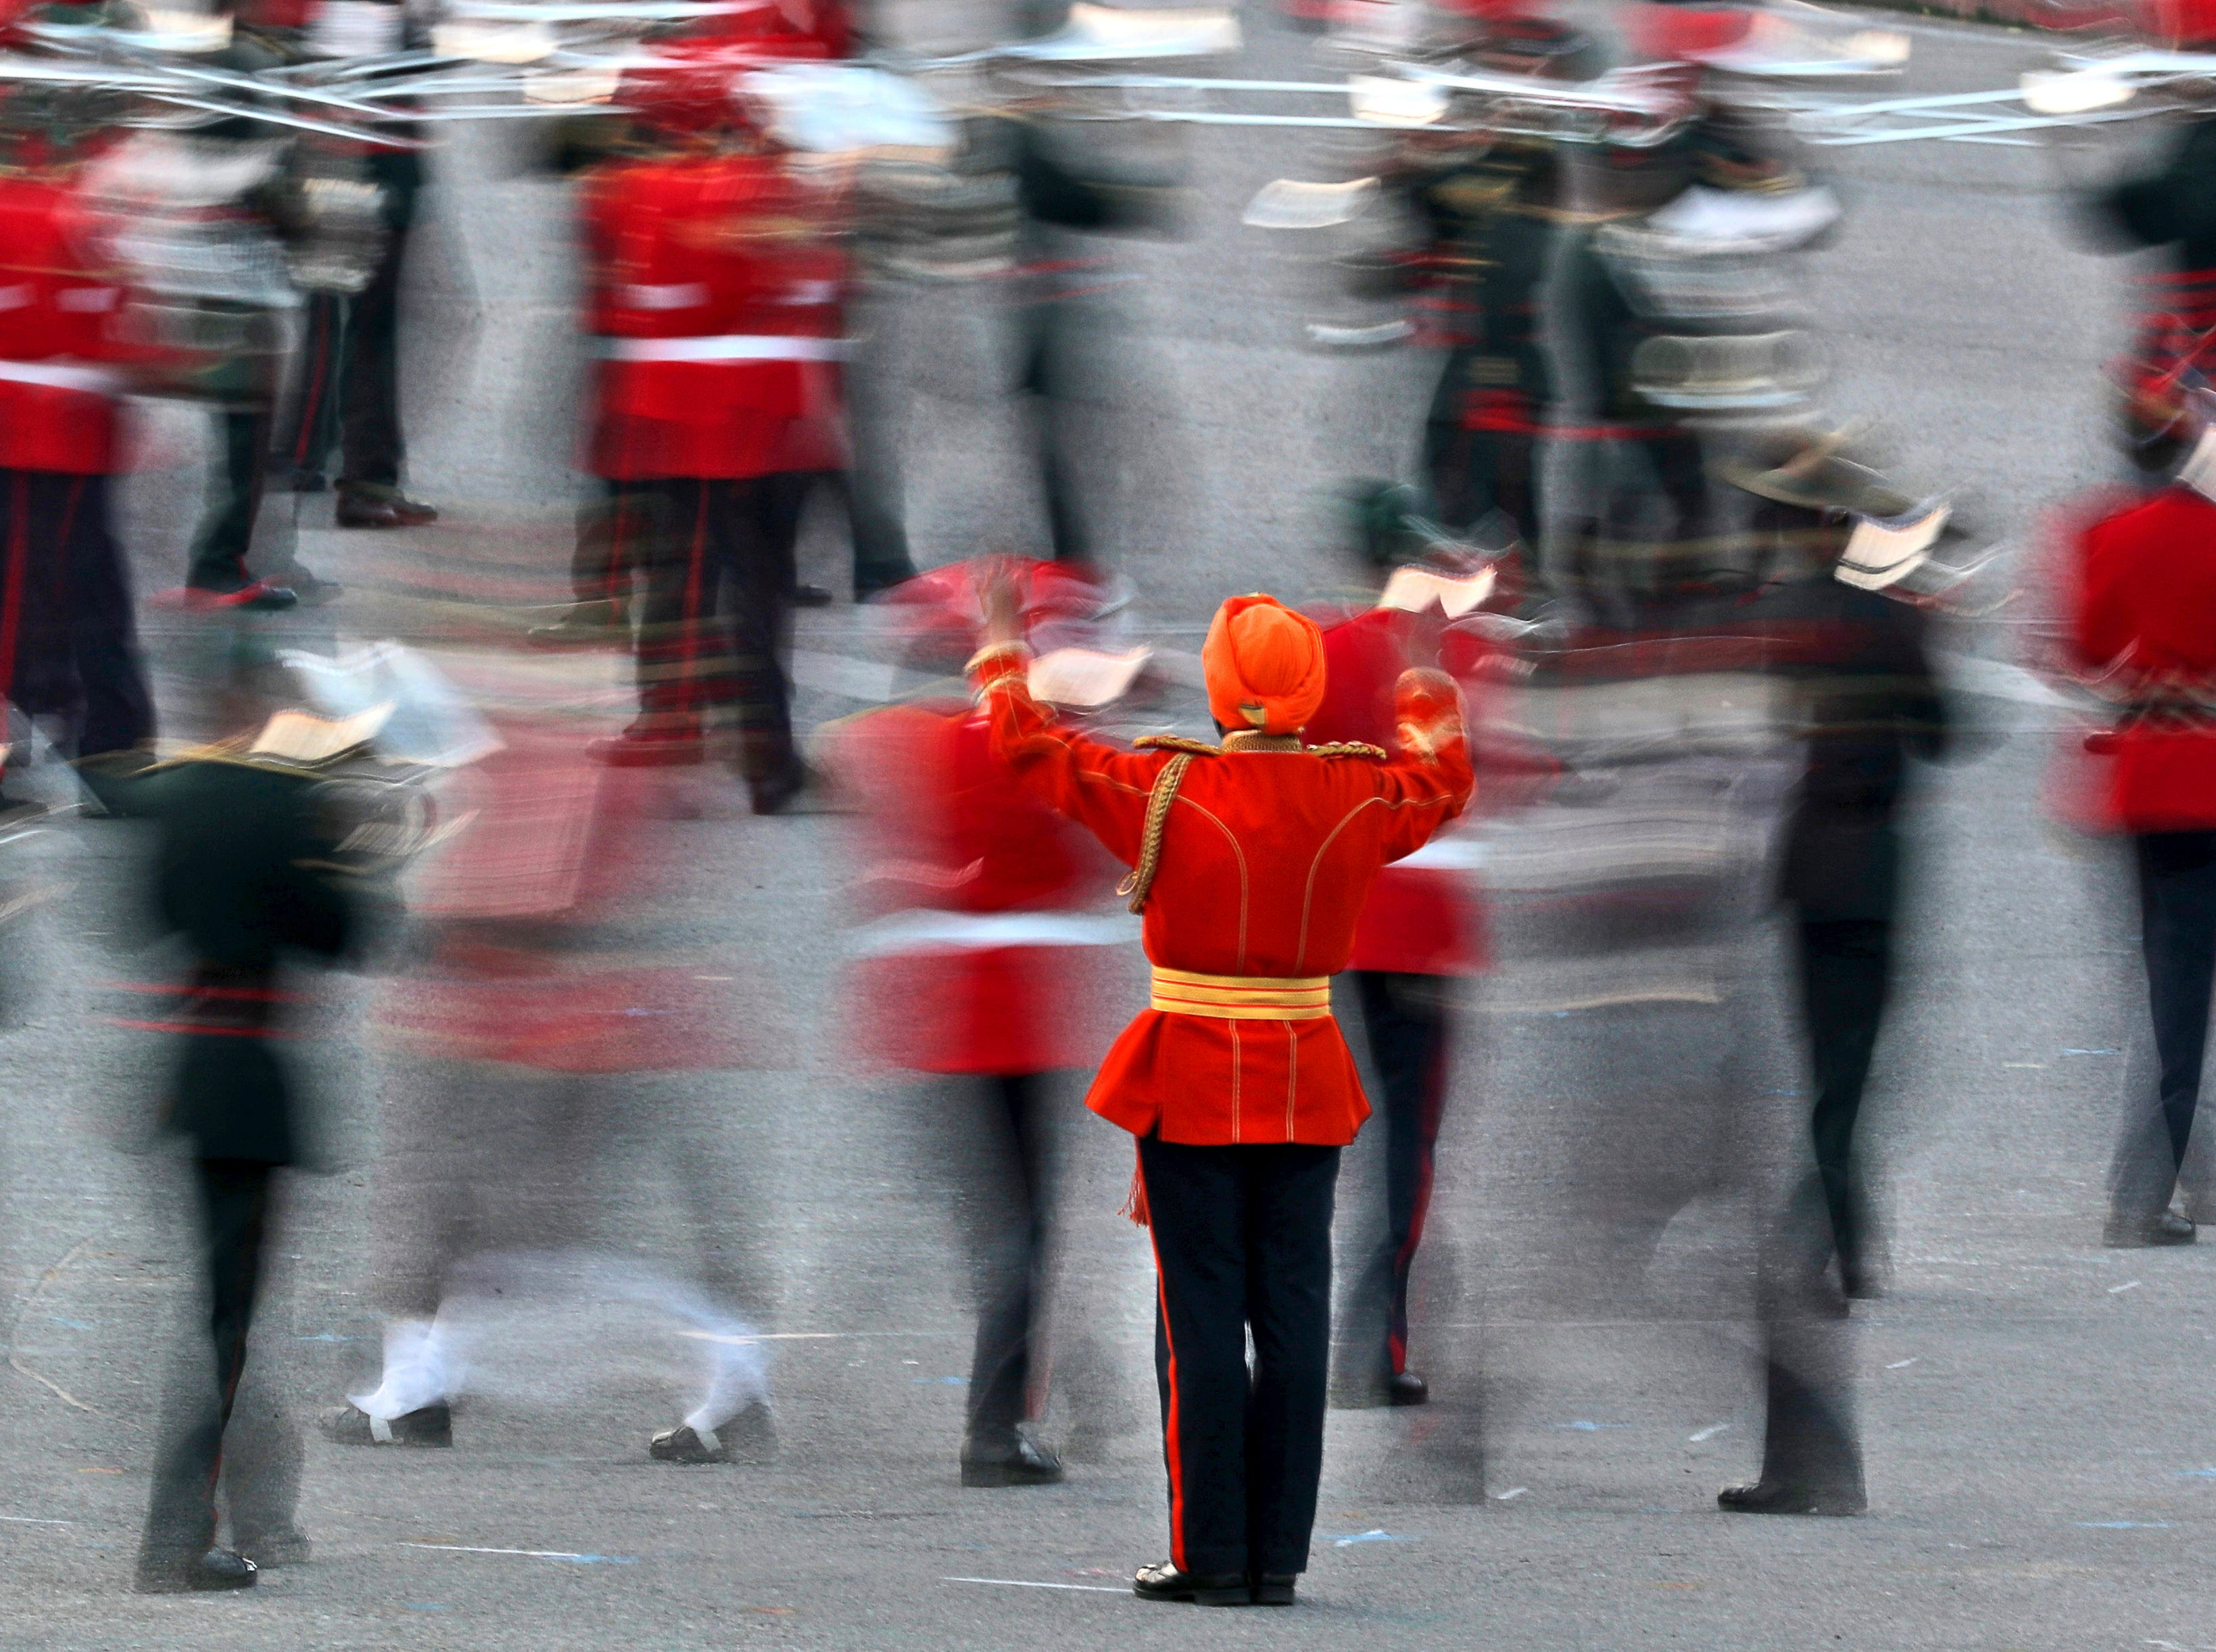 Indian military bands perform during the Beating Retreat ceremony at Raisina Hills, the government seat of power, in New Delhi, India, Tuesday, Jan. 29, 2019. The ceremony marks the end of the annual Republic Day festivities.